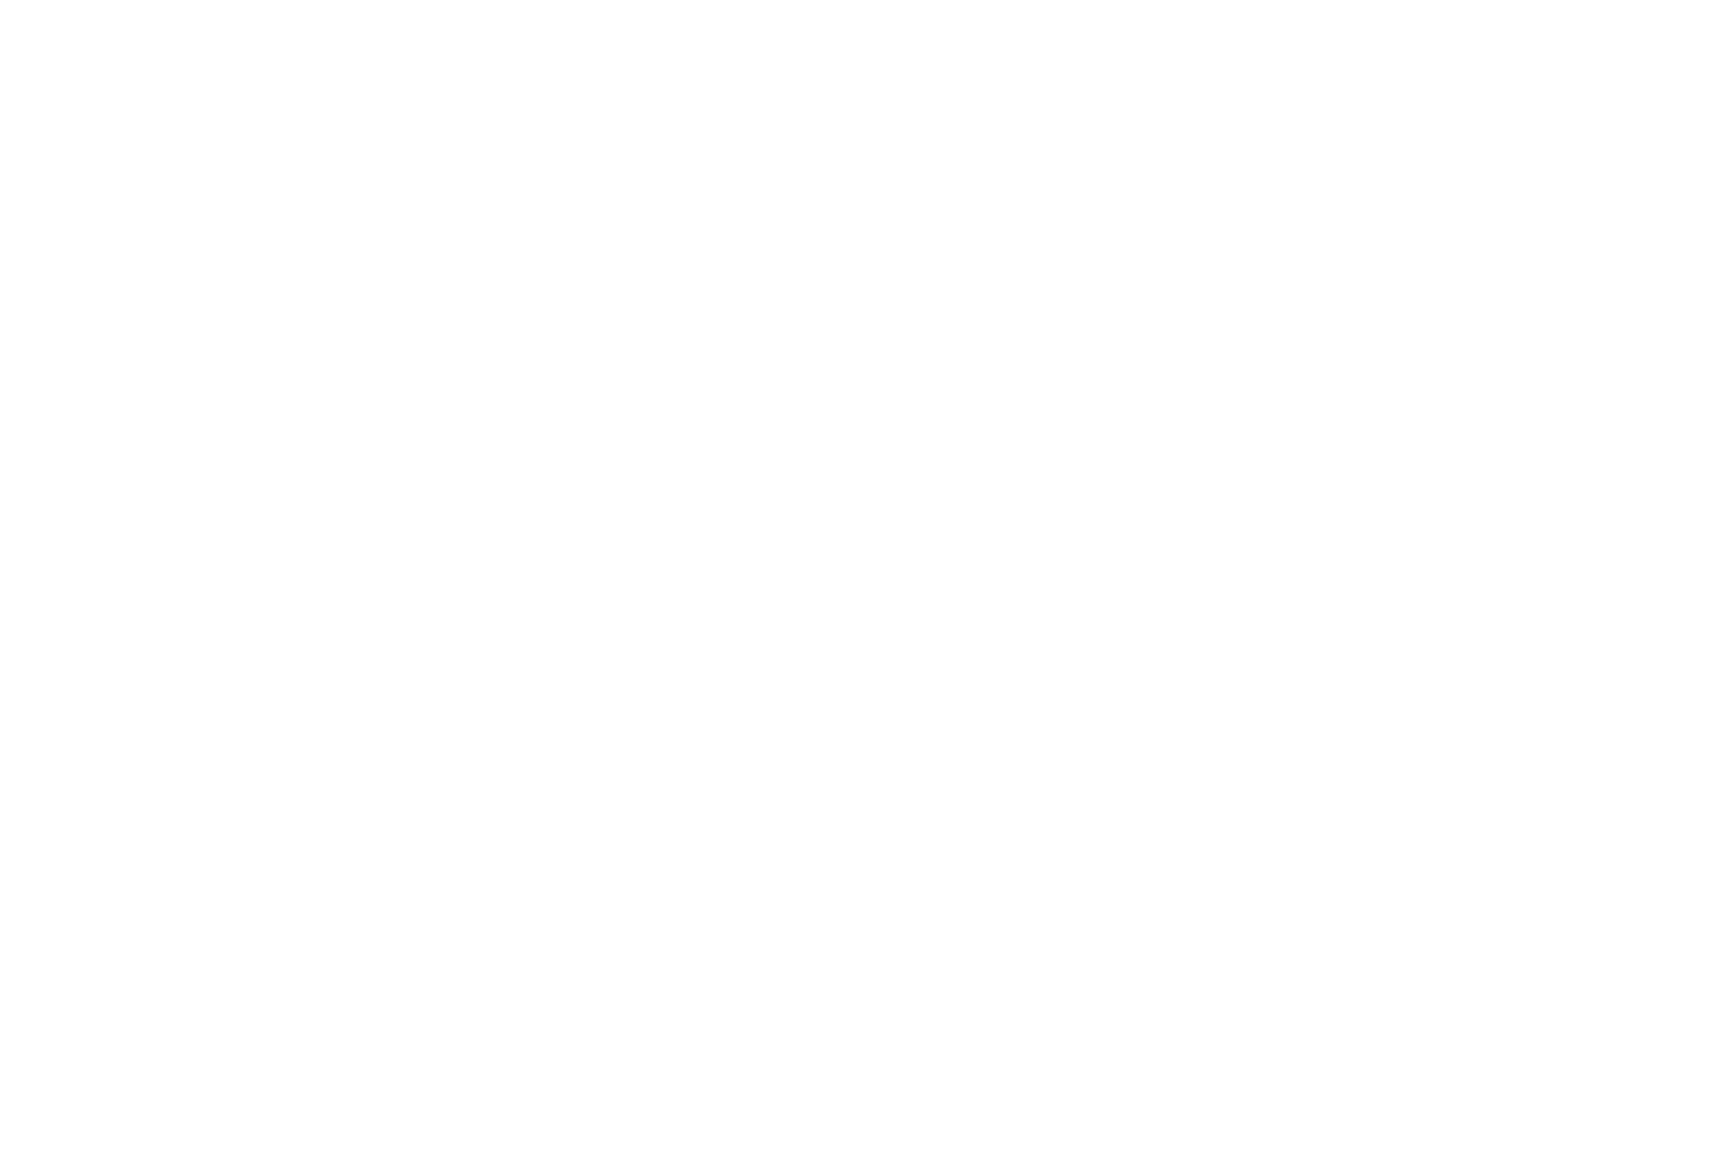 BEST DOCUMENTARY - Short Stop International Film Festival - 2017 (1)